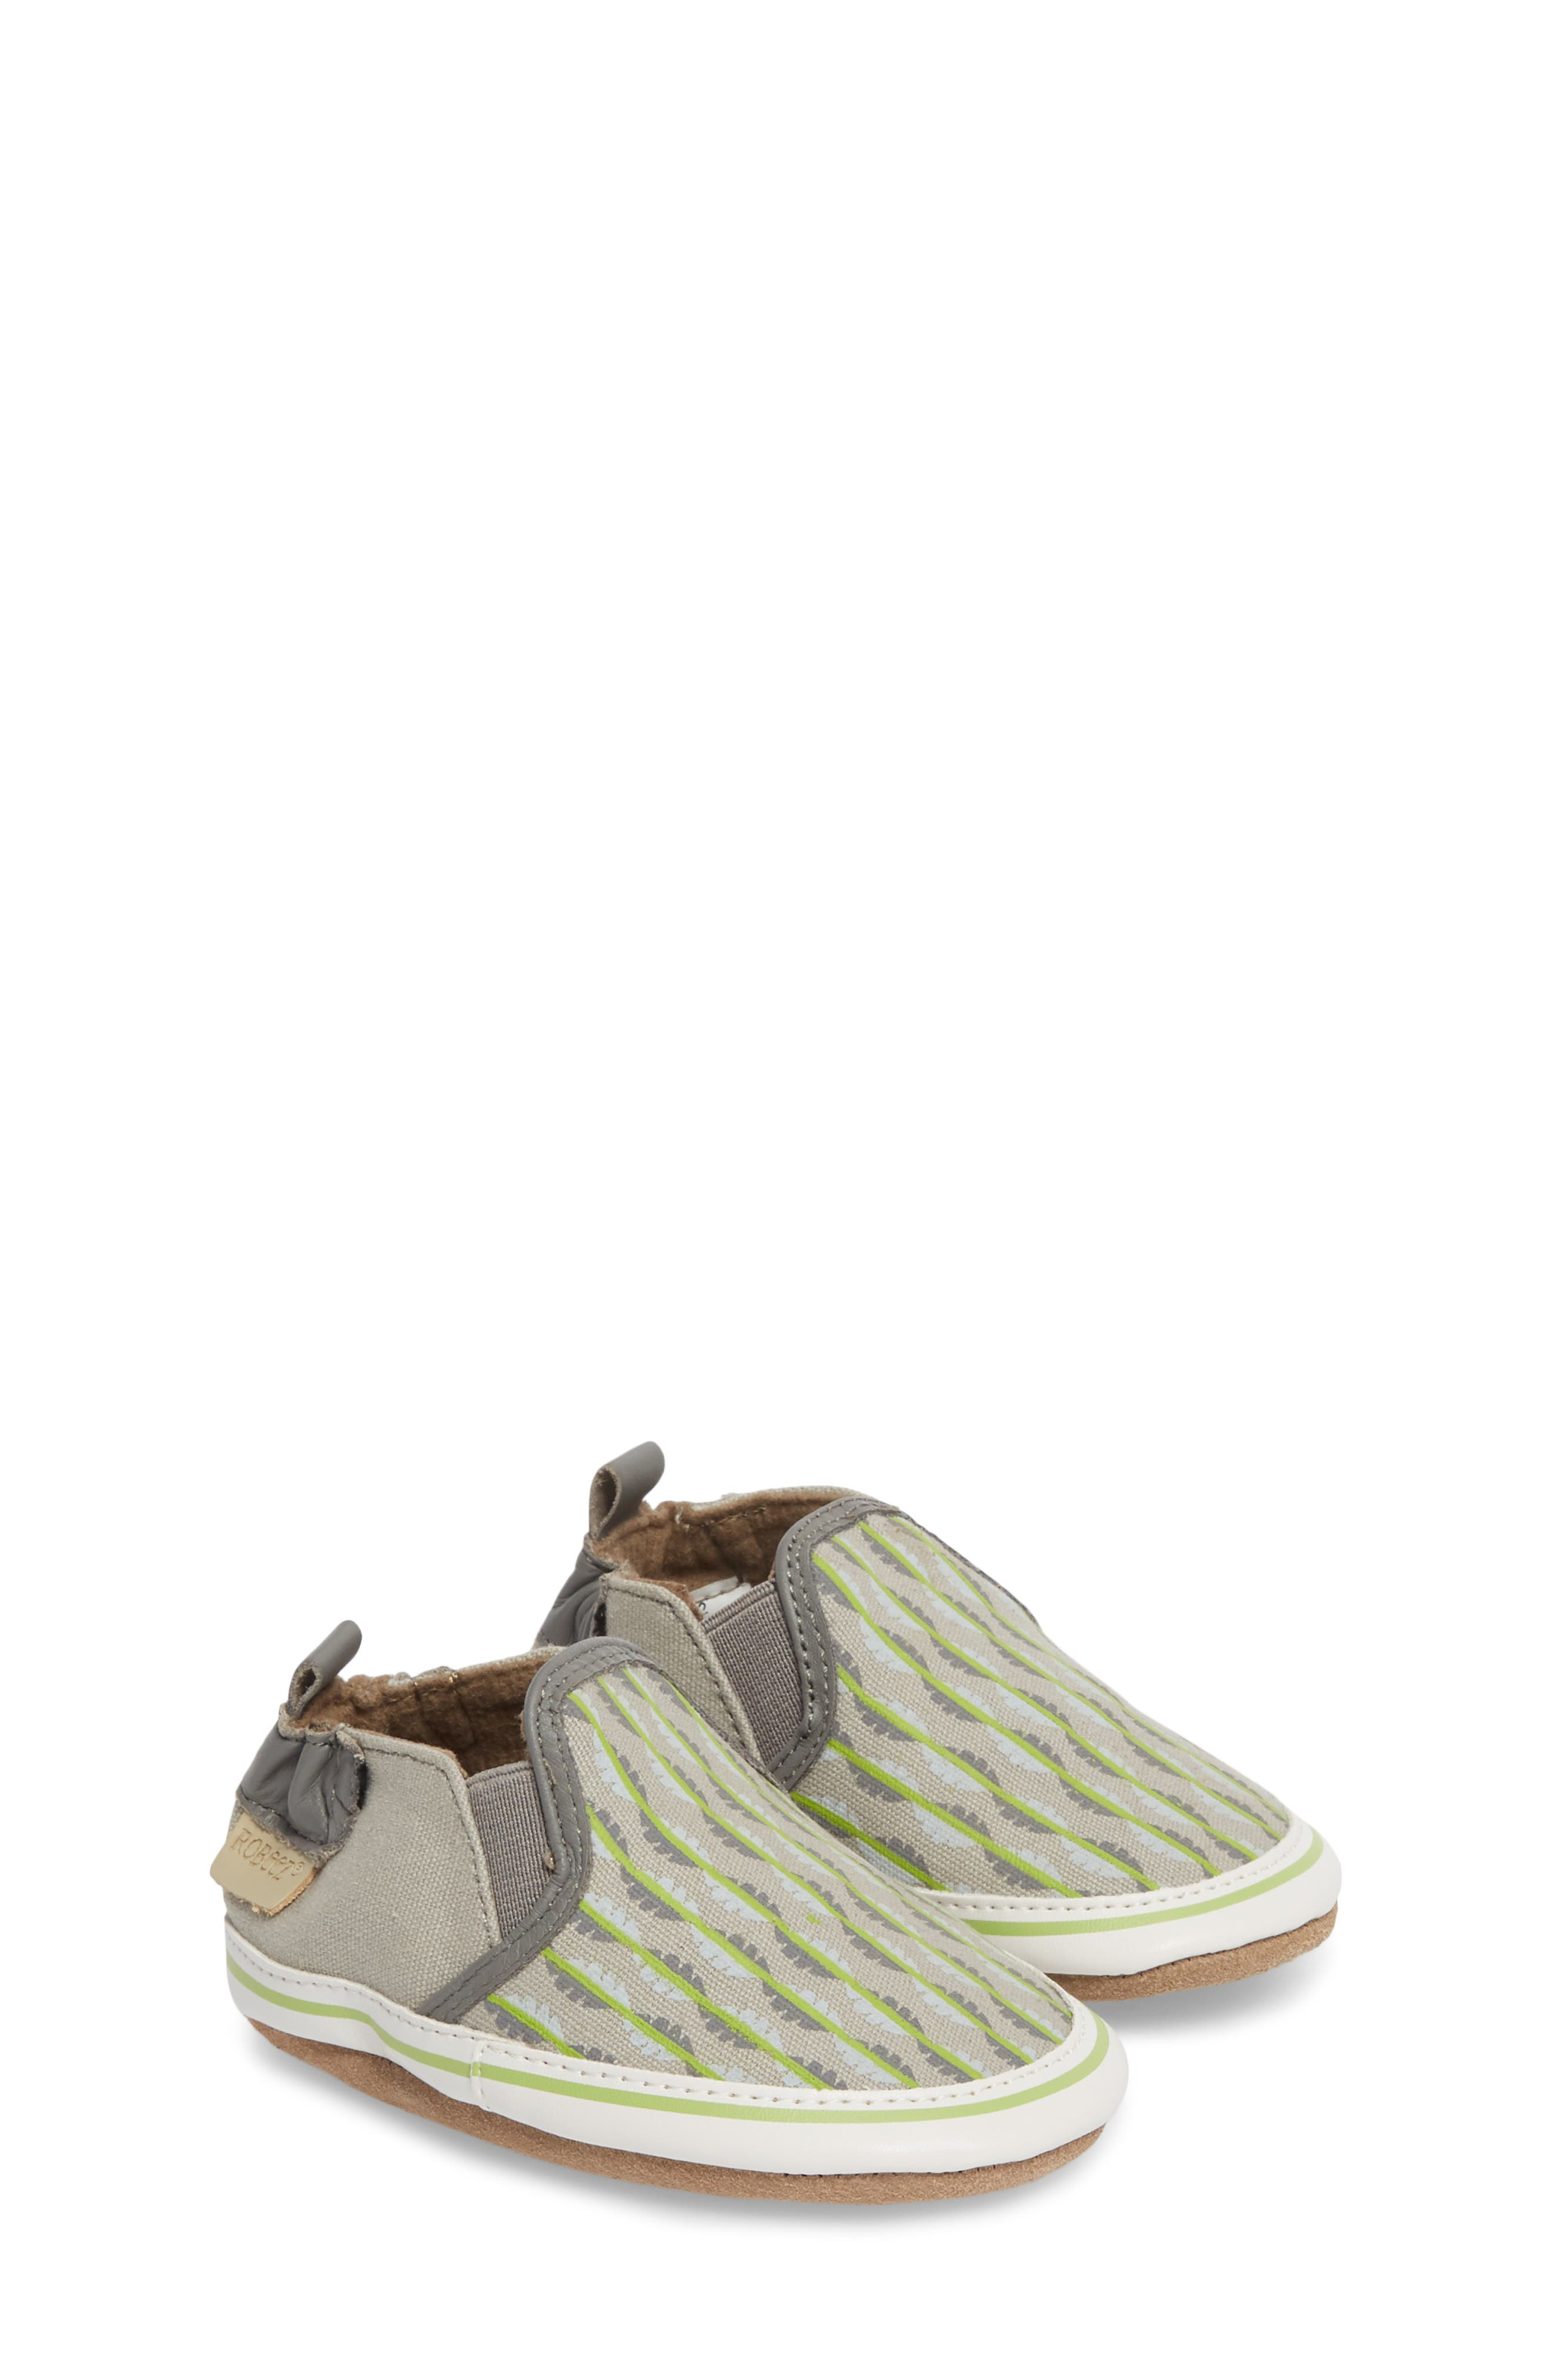 Liam Tropical Print Crib Shoe,                             Main thumbnail 1, color,                             GREY